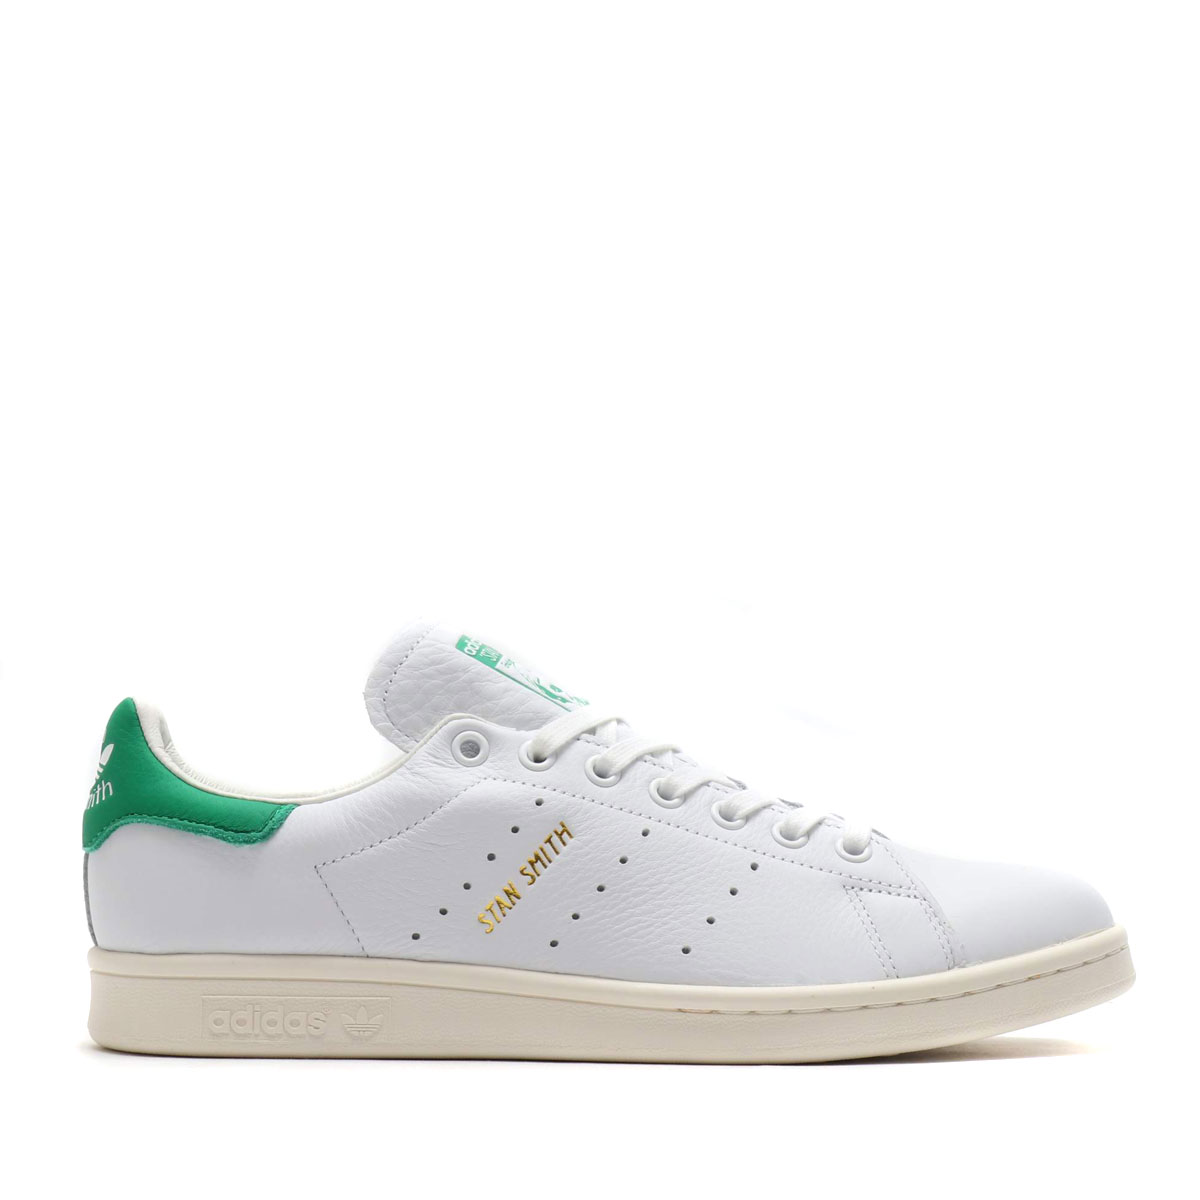 Adidas Originals adidas Stan Smith Forever Shoes